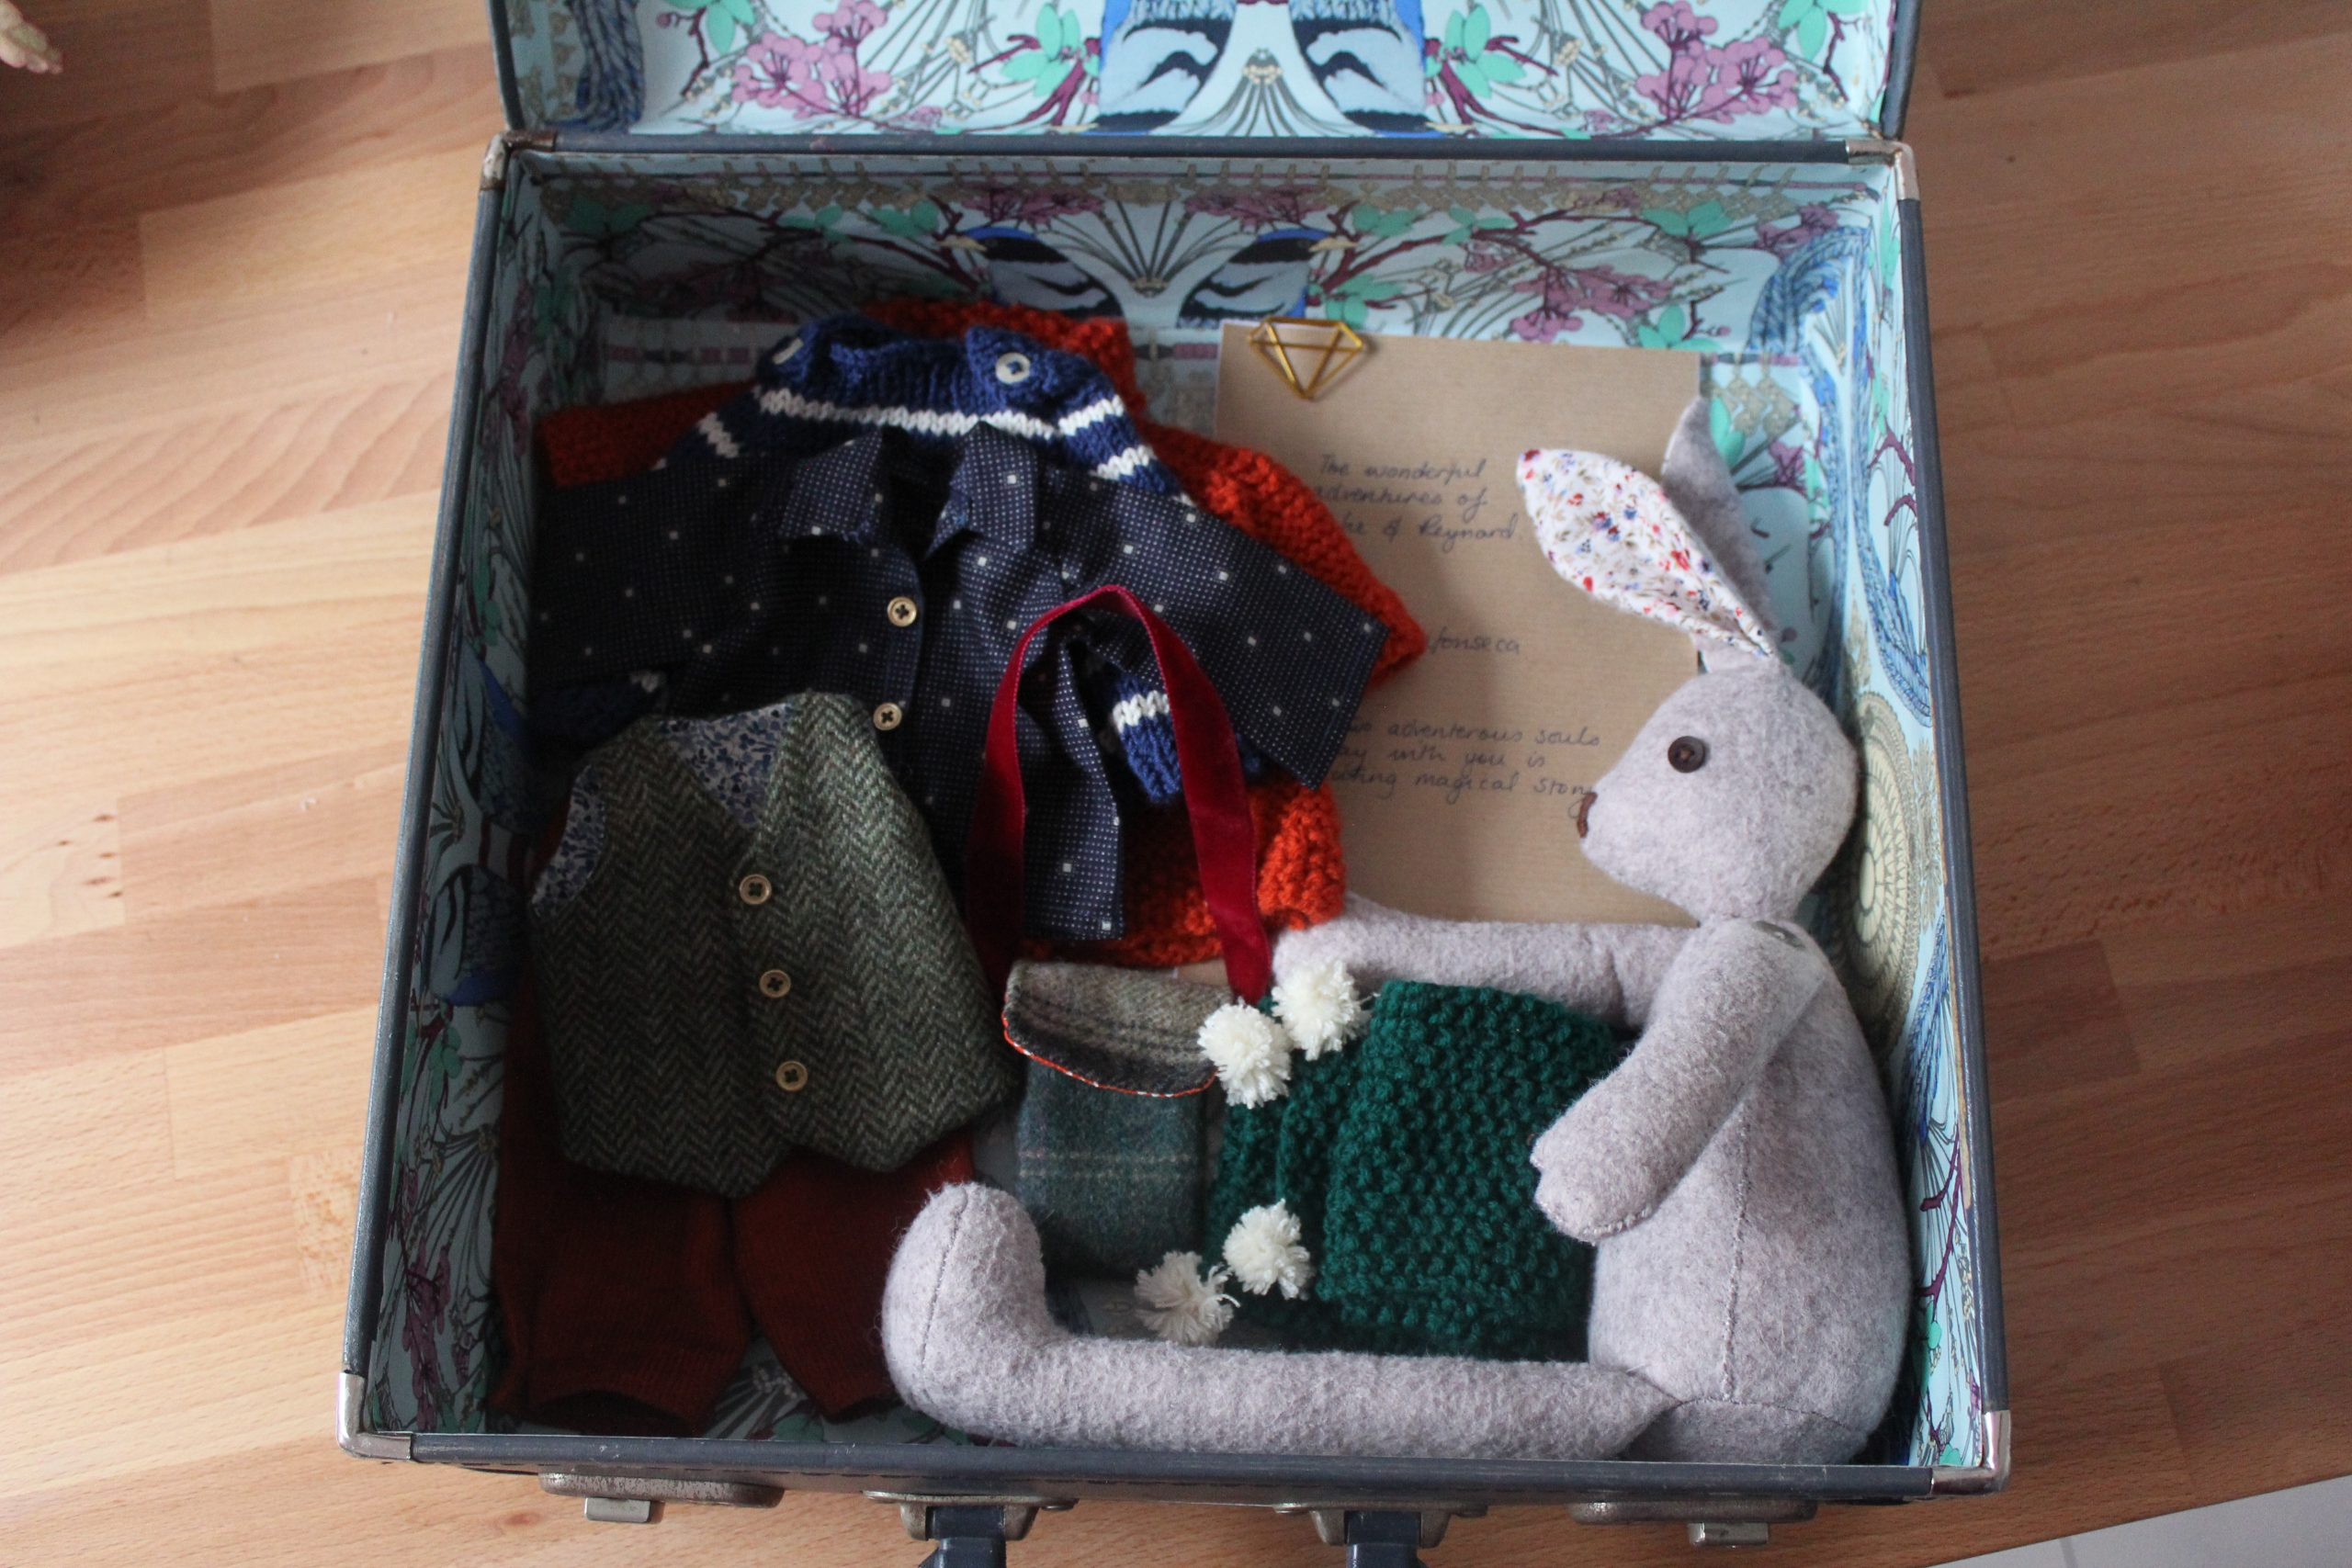 a handmade rabbit in an upcycled   vintage suitcase with tiny handmade clothes